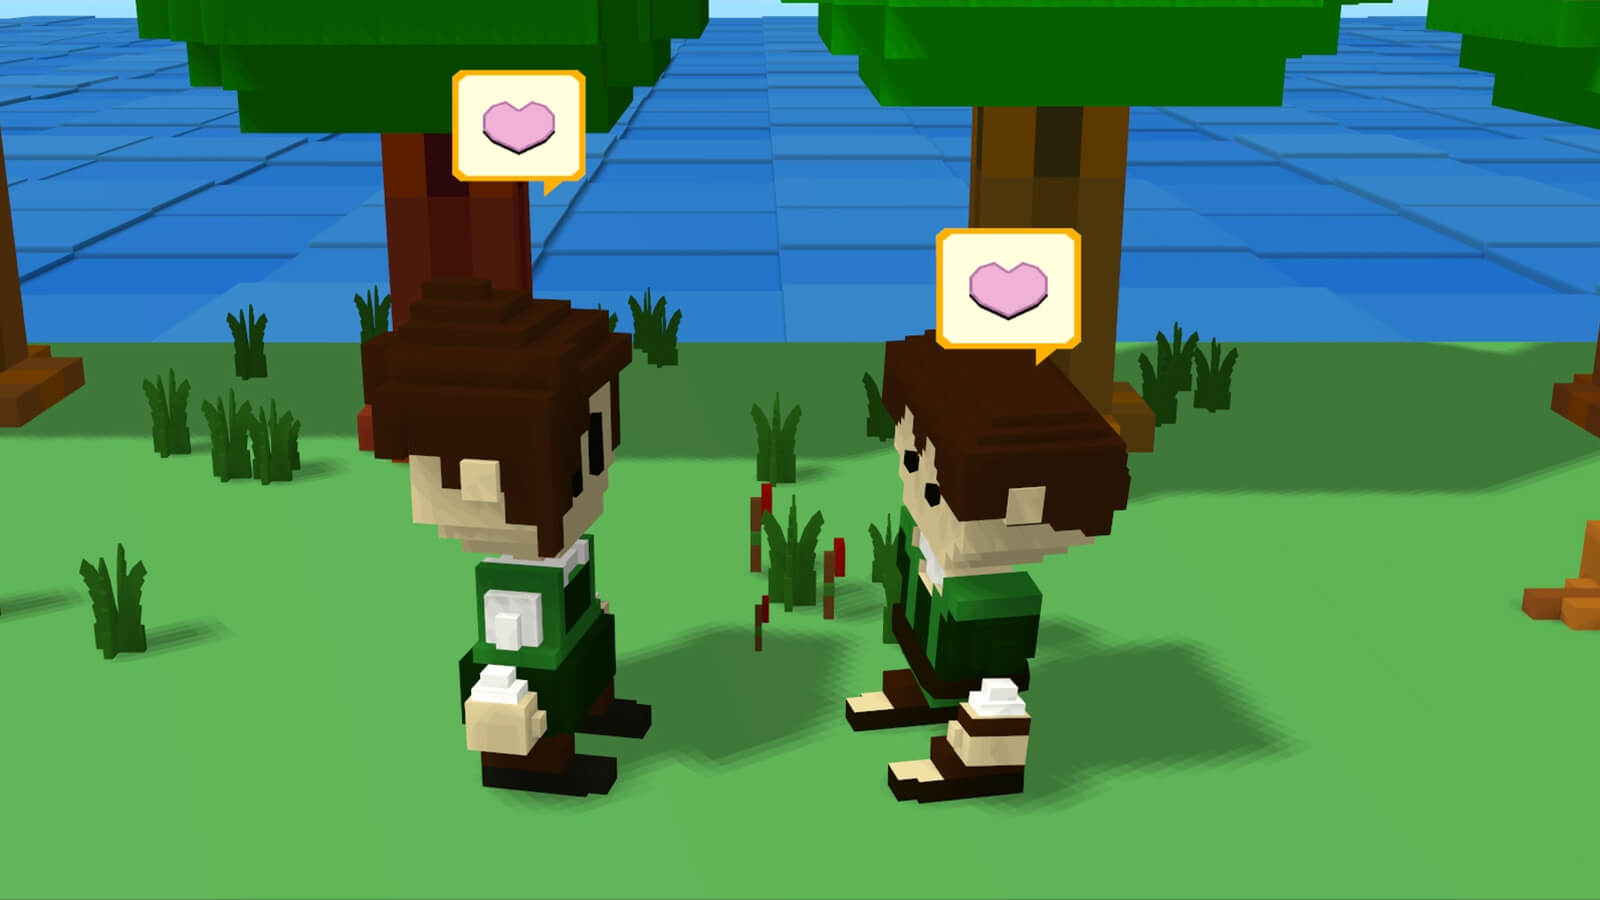 Two blocky villagers speak to each other with heart icons for speech bubbles.